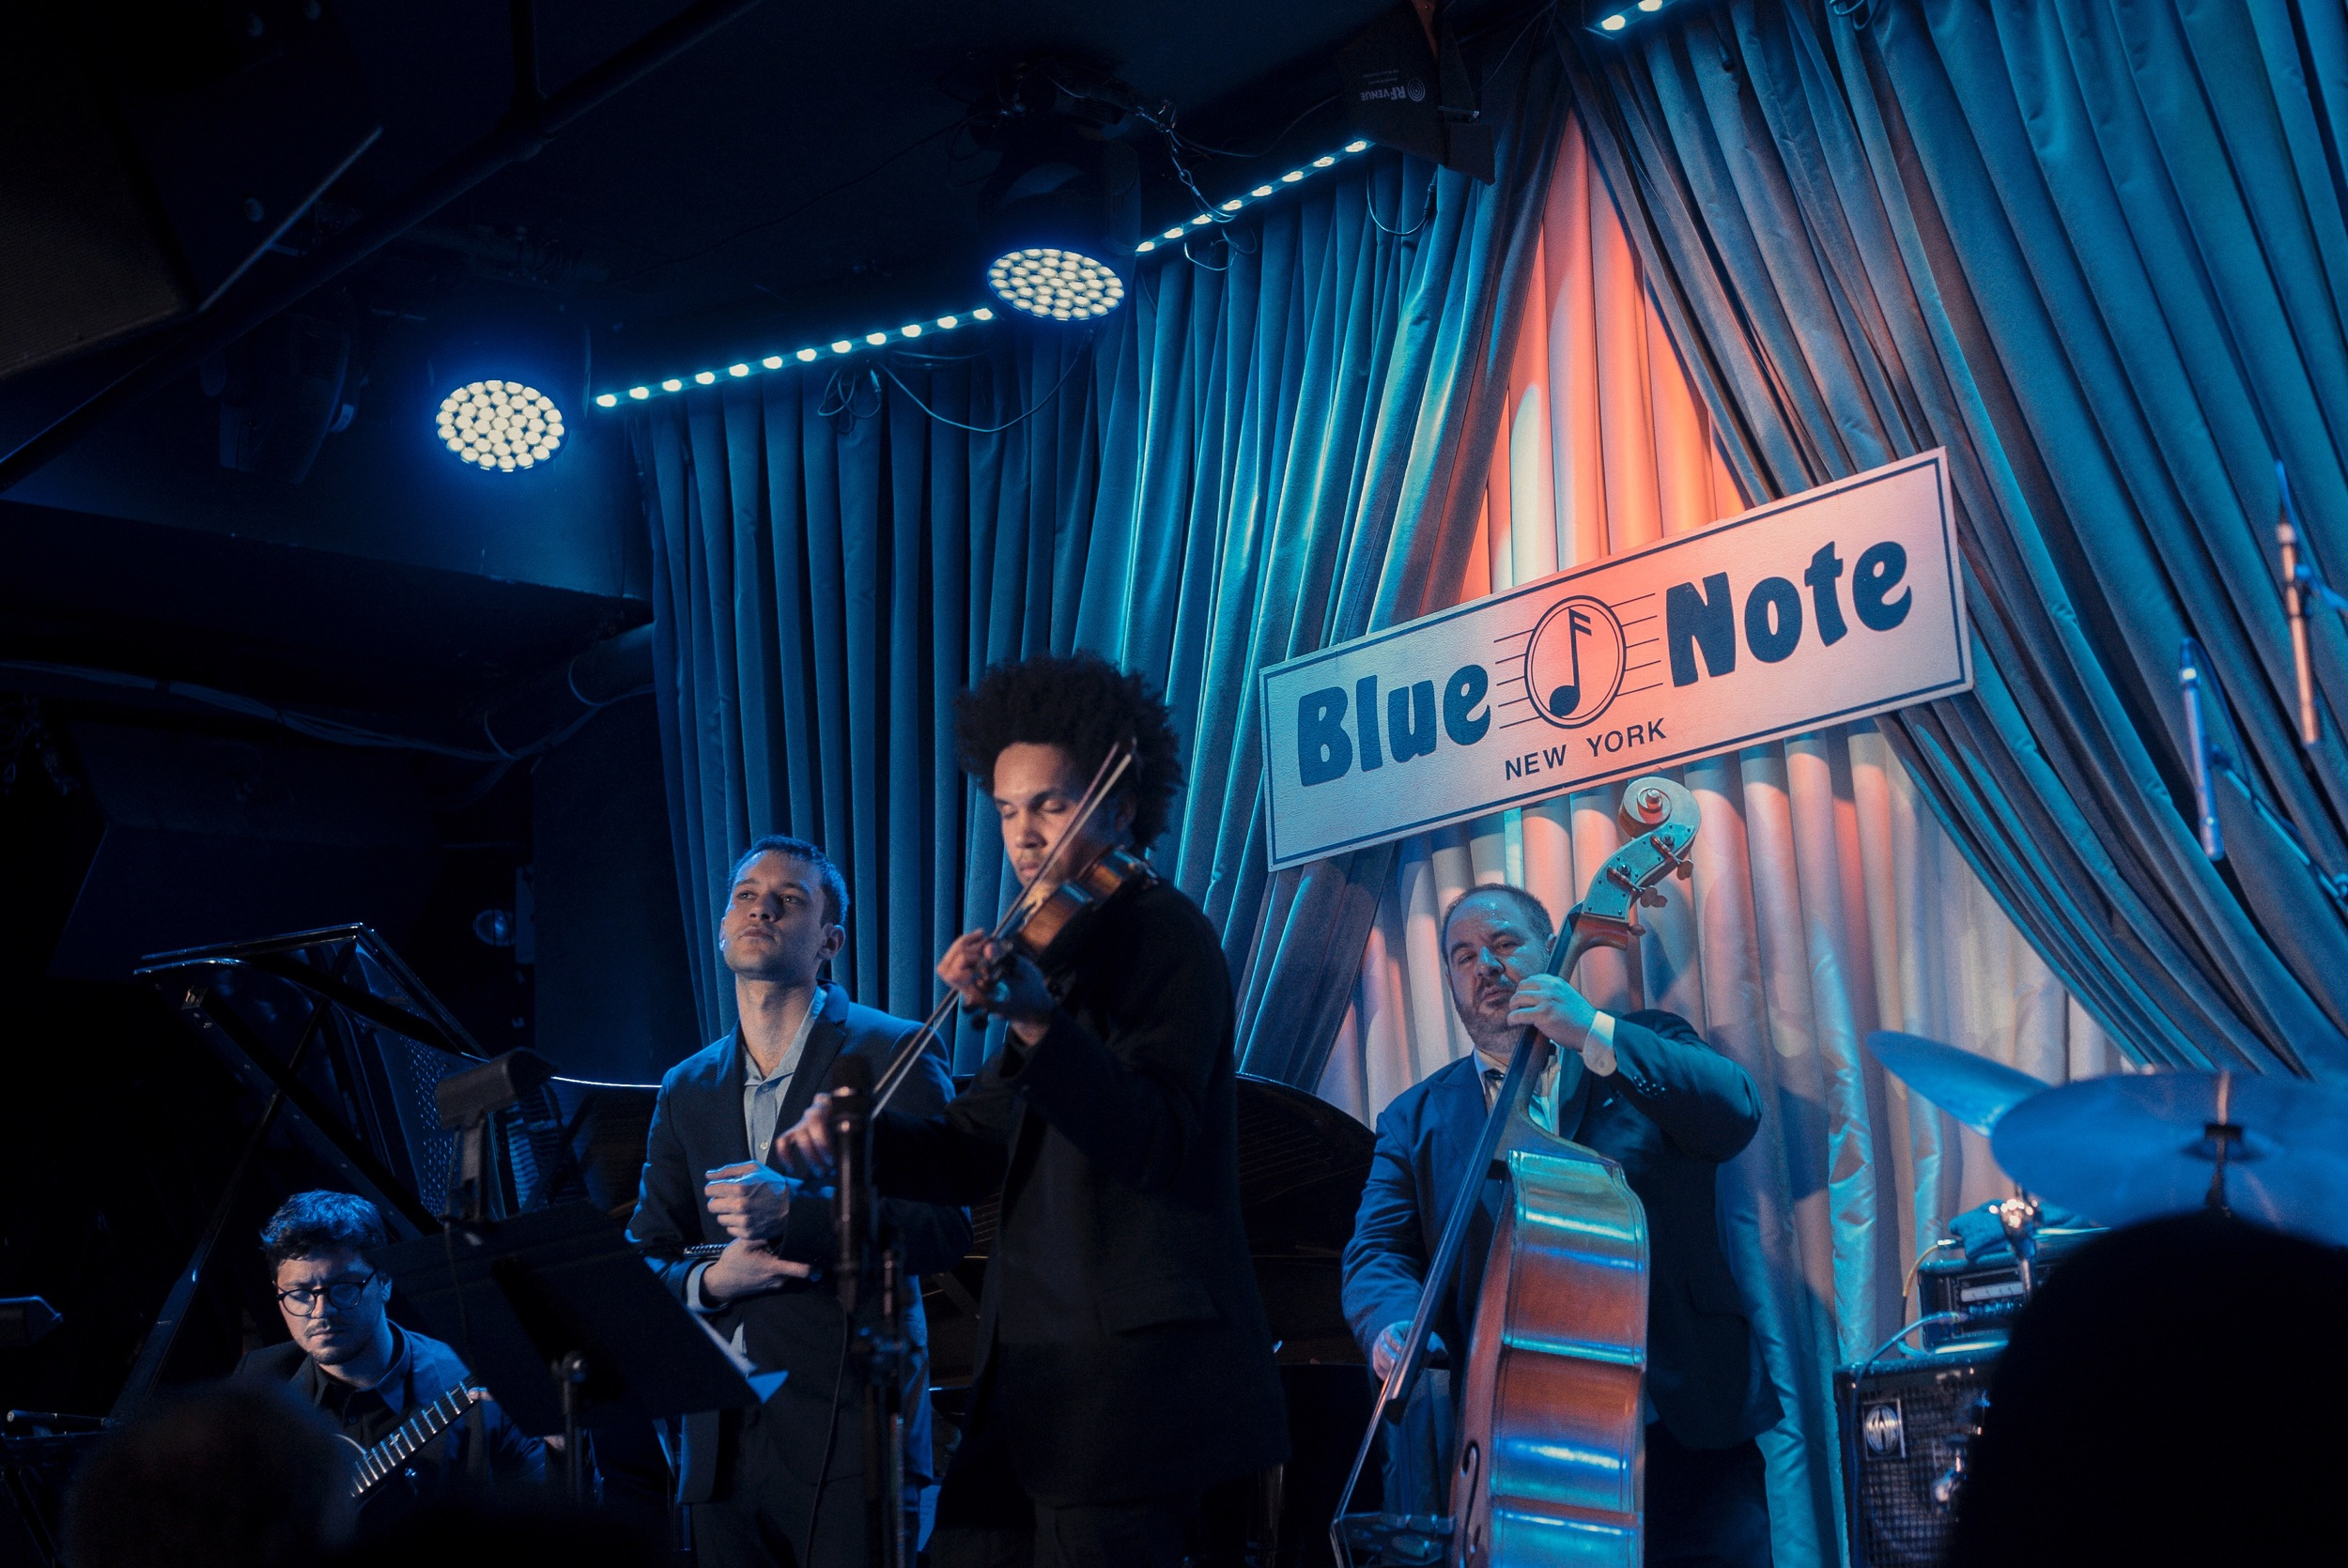 scott-at-bluenote